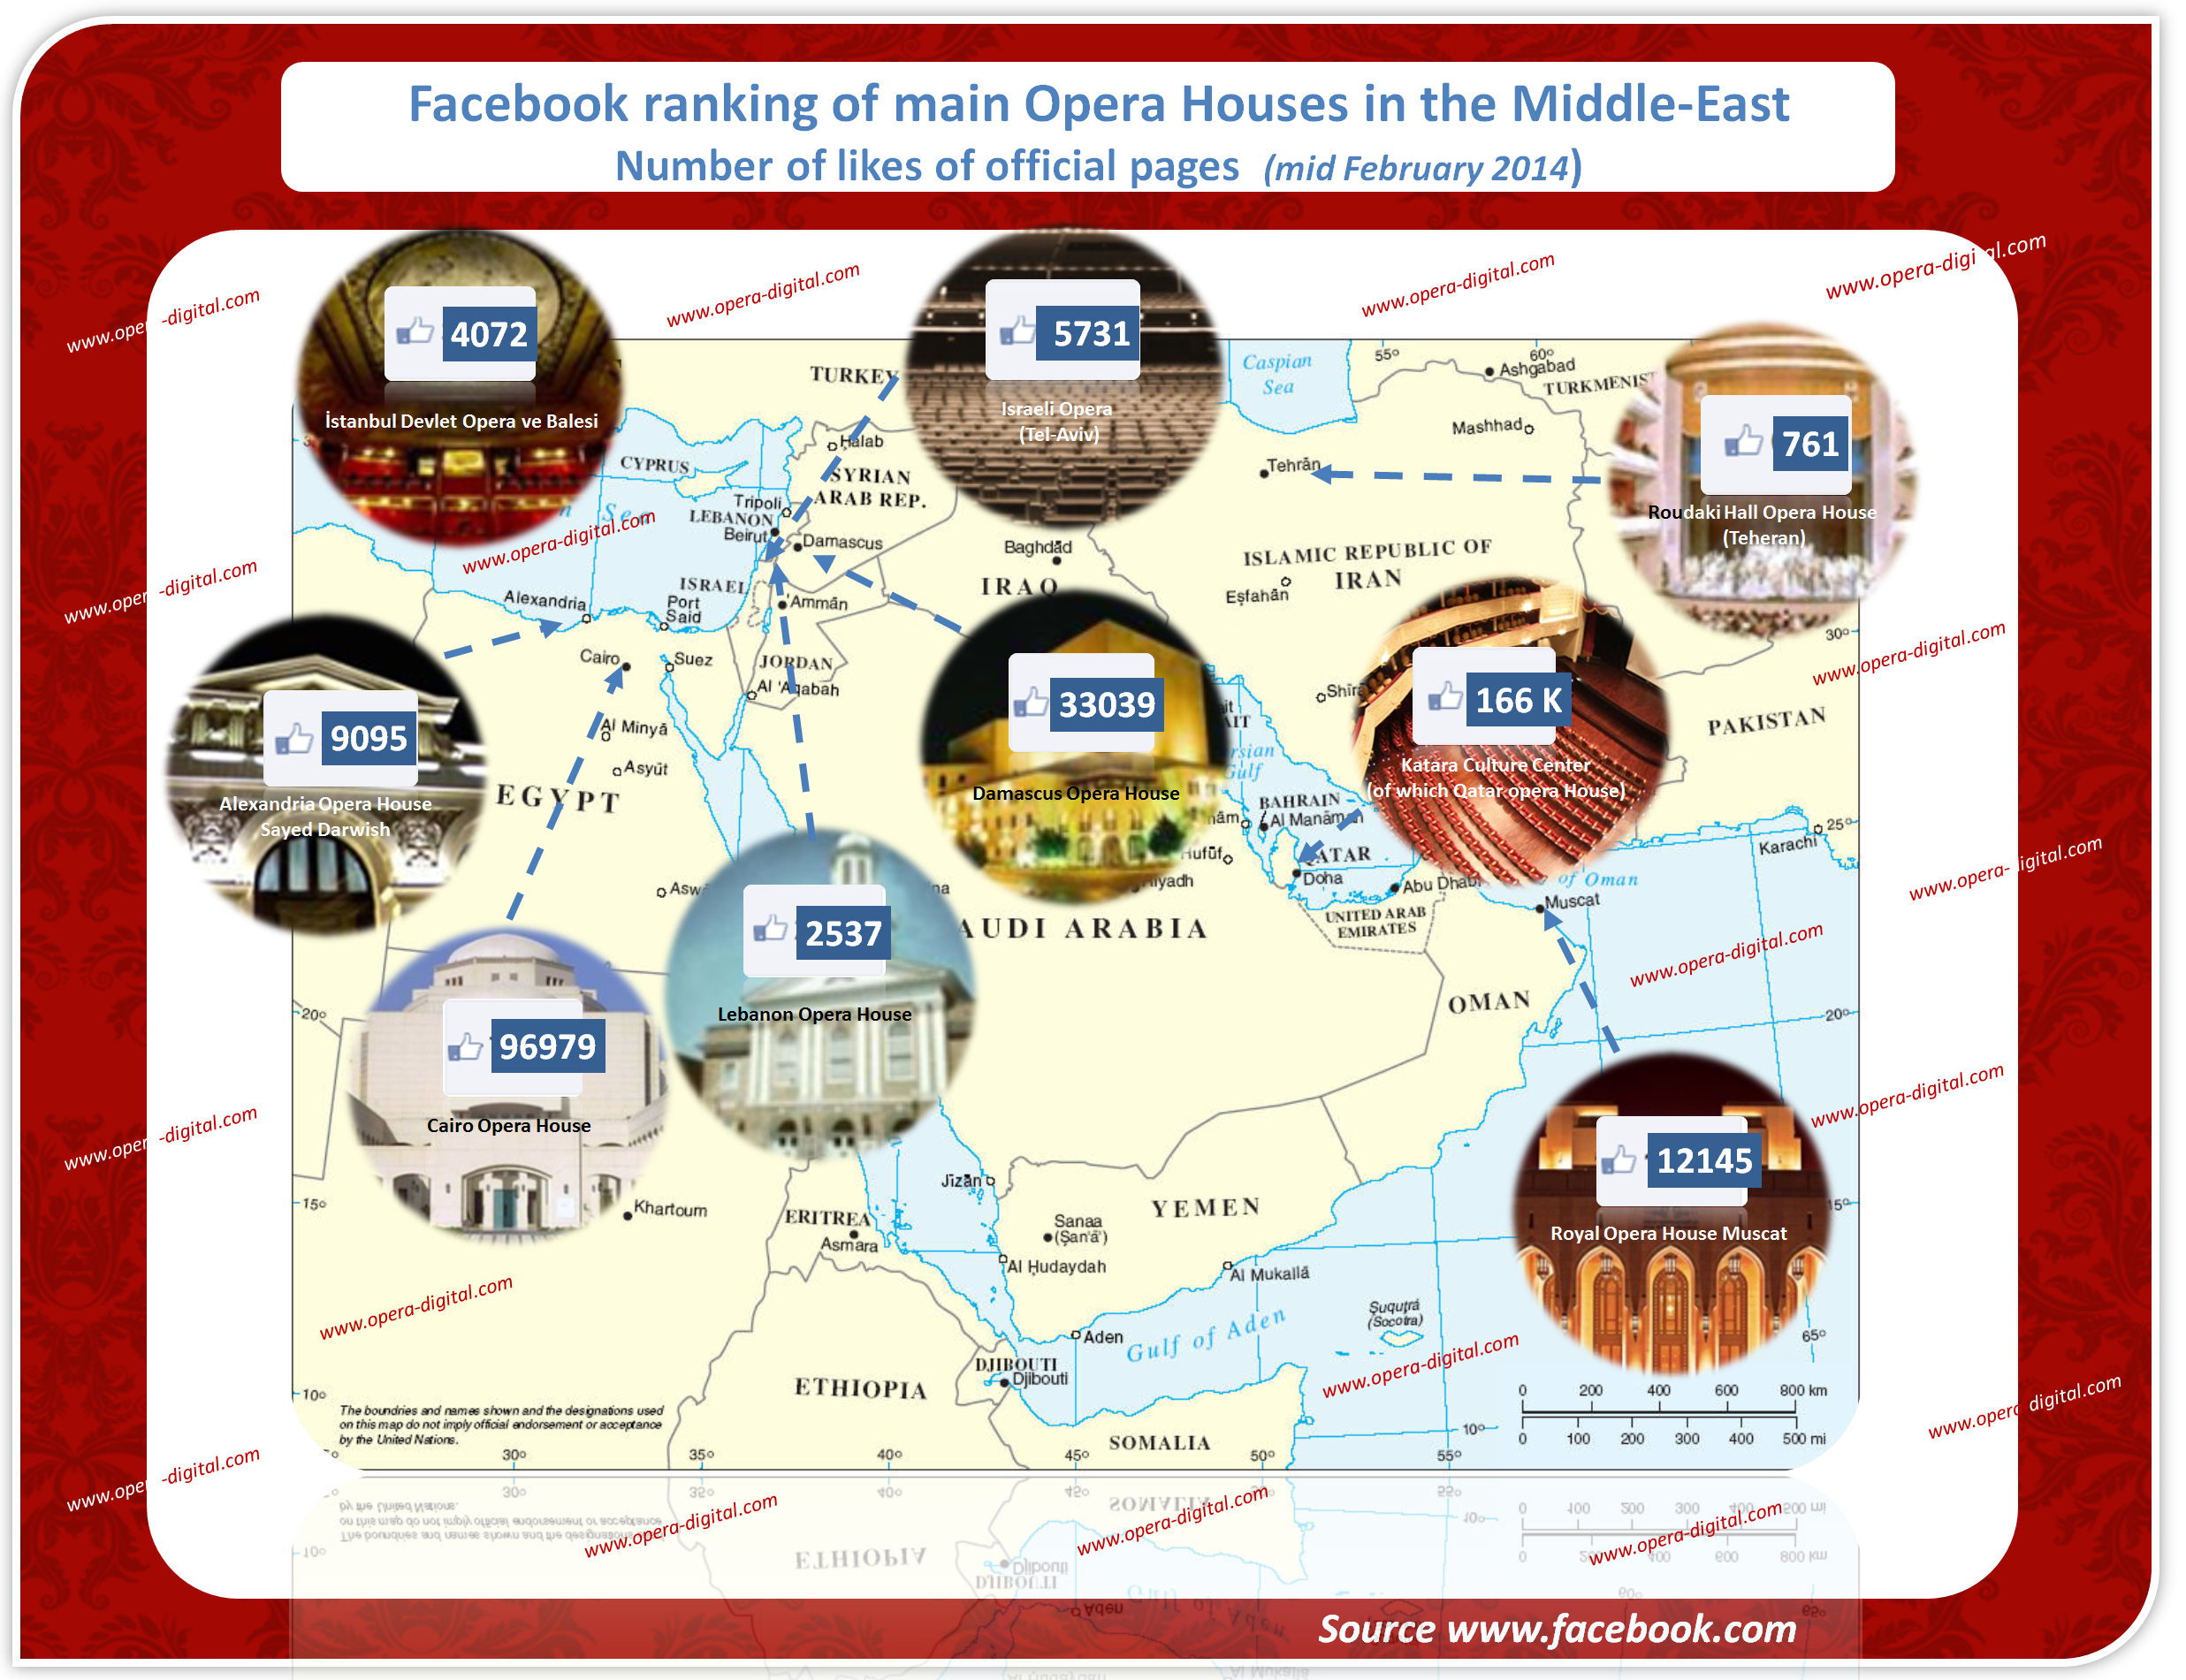 Facebook ranking of opera houses in the Middle East